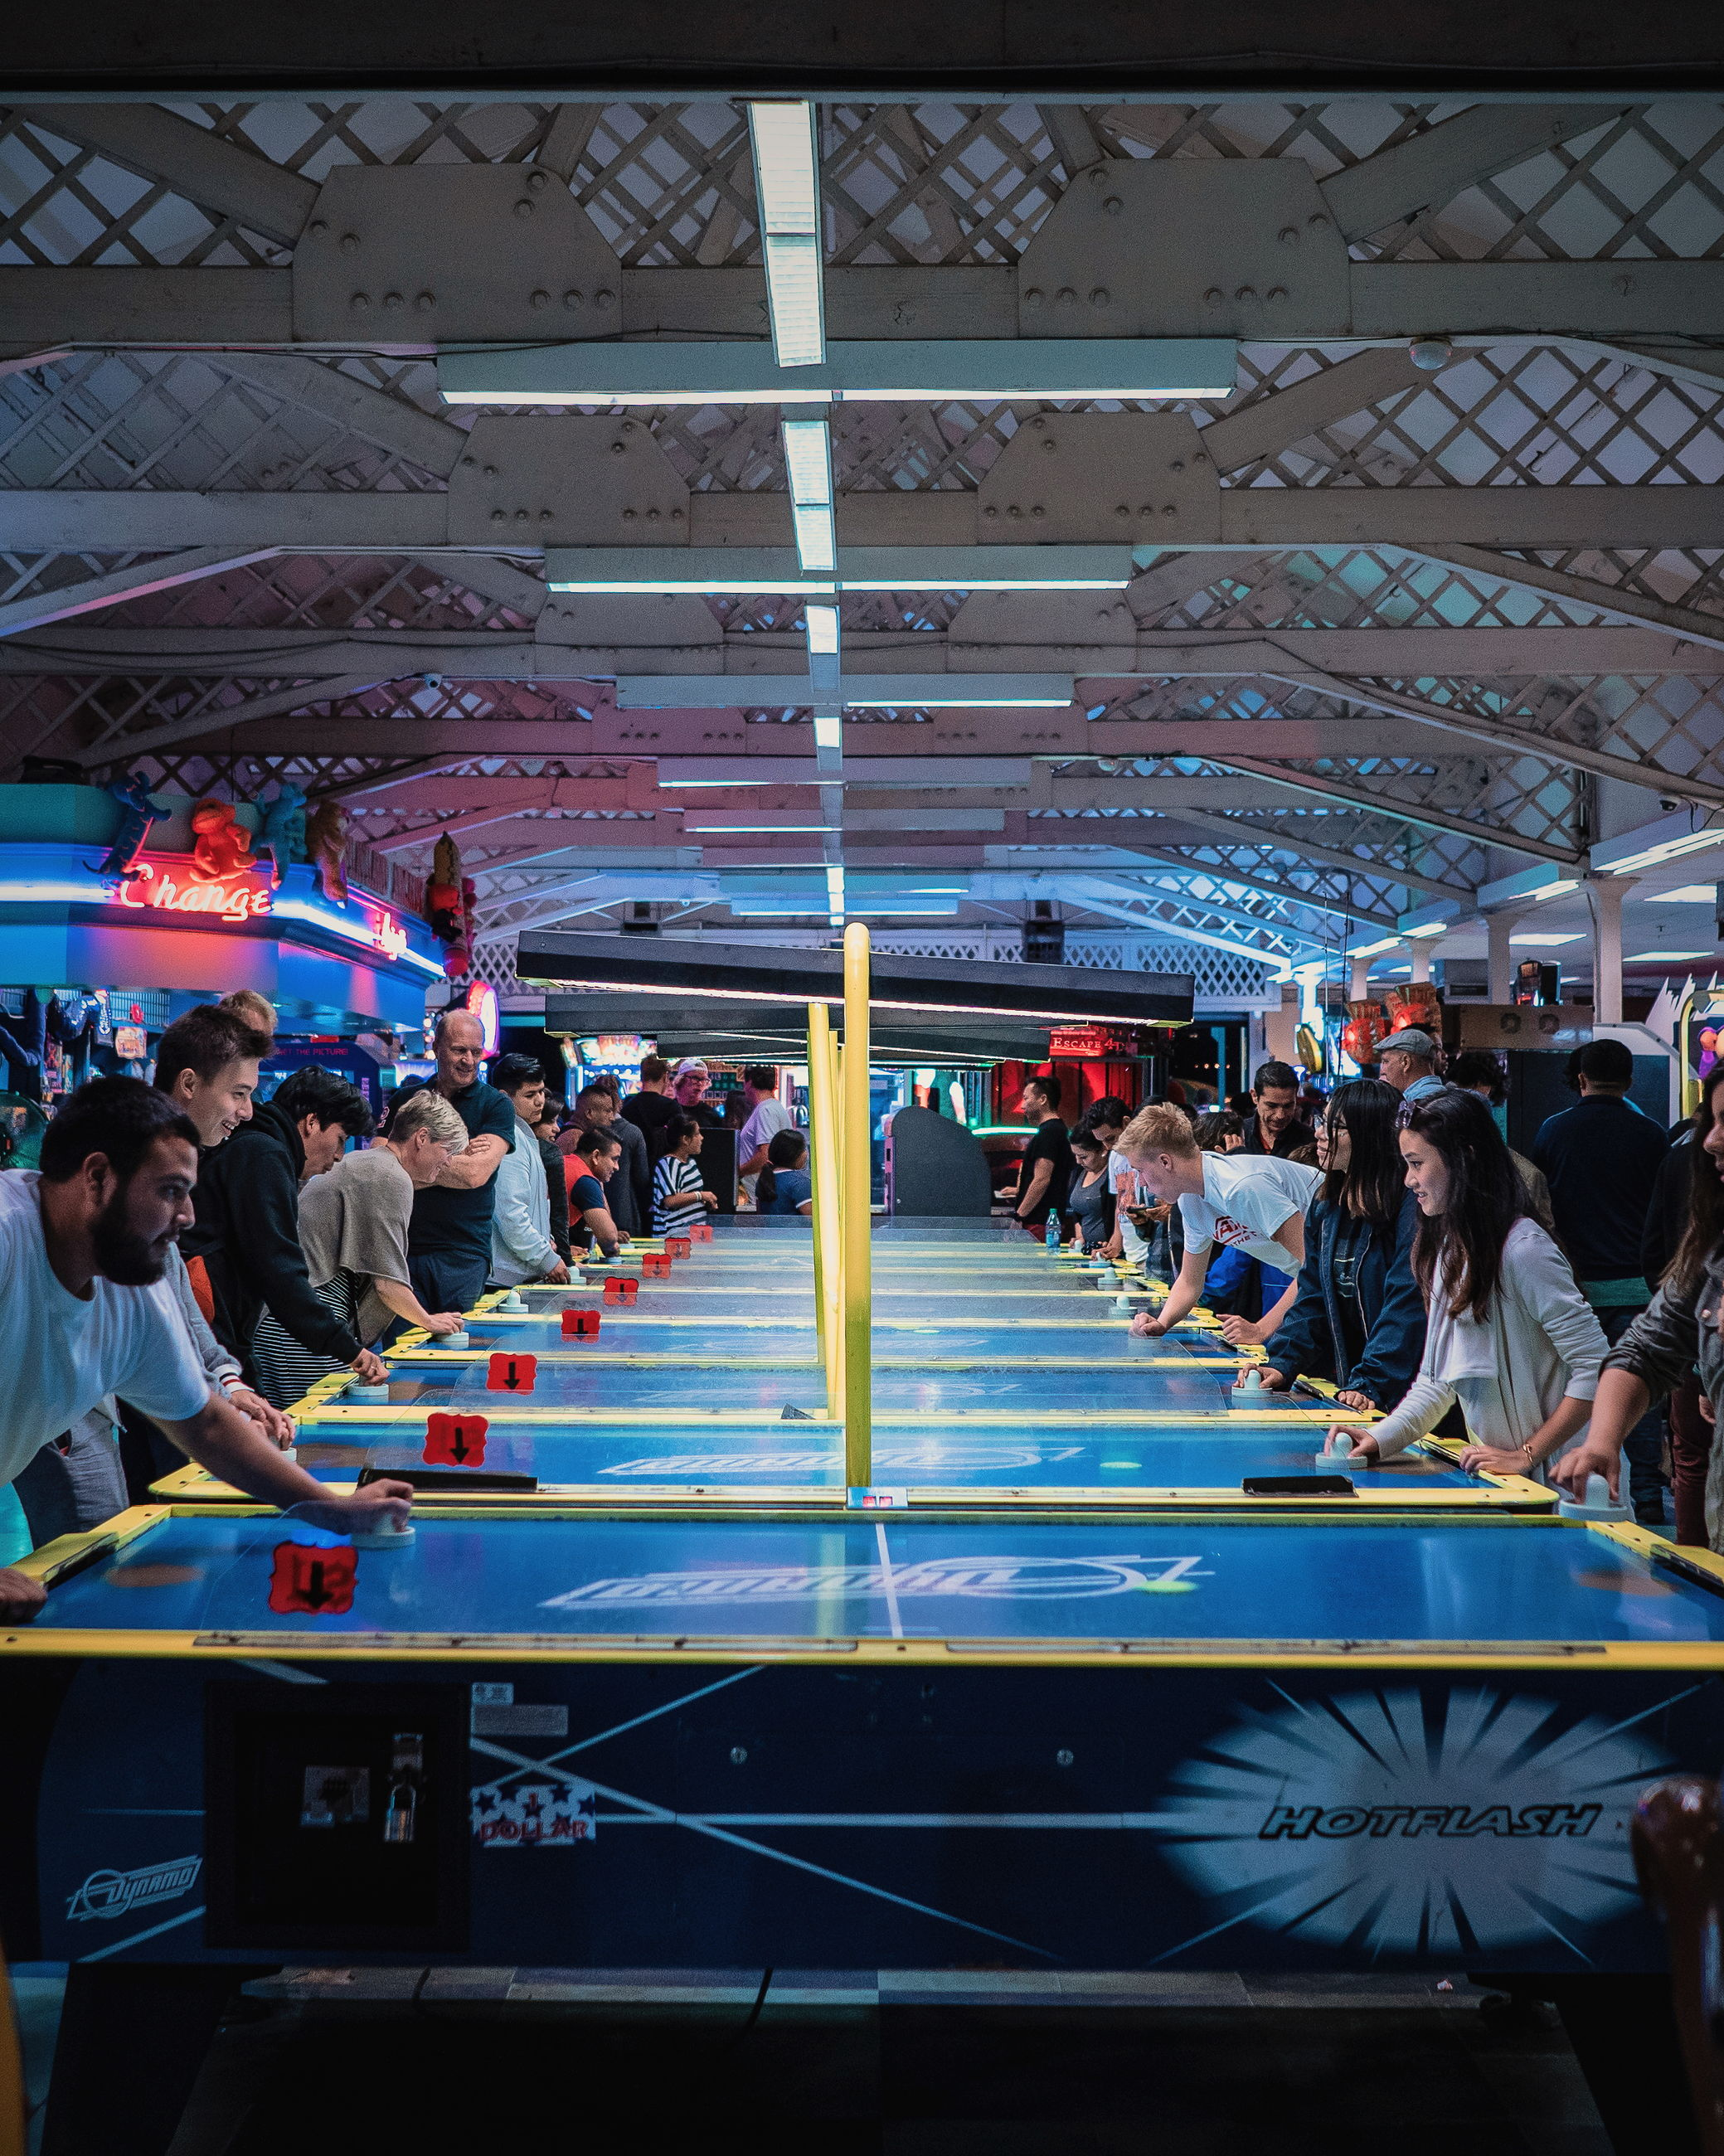 crowd, large group of people, group of people, real people, women, men, adult, lifestyles, architecture, leisure activity, indoors, sport, illuminated, built structure, enjoyment, day, lighting equipment, mixed age range, arts culture and entertainment, ceiling, waiting, spectator